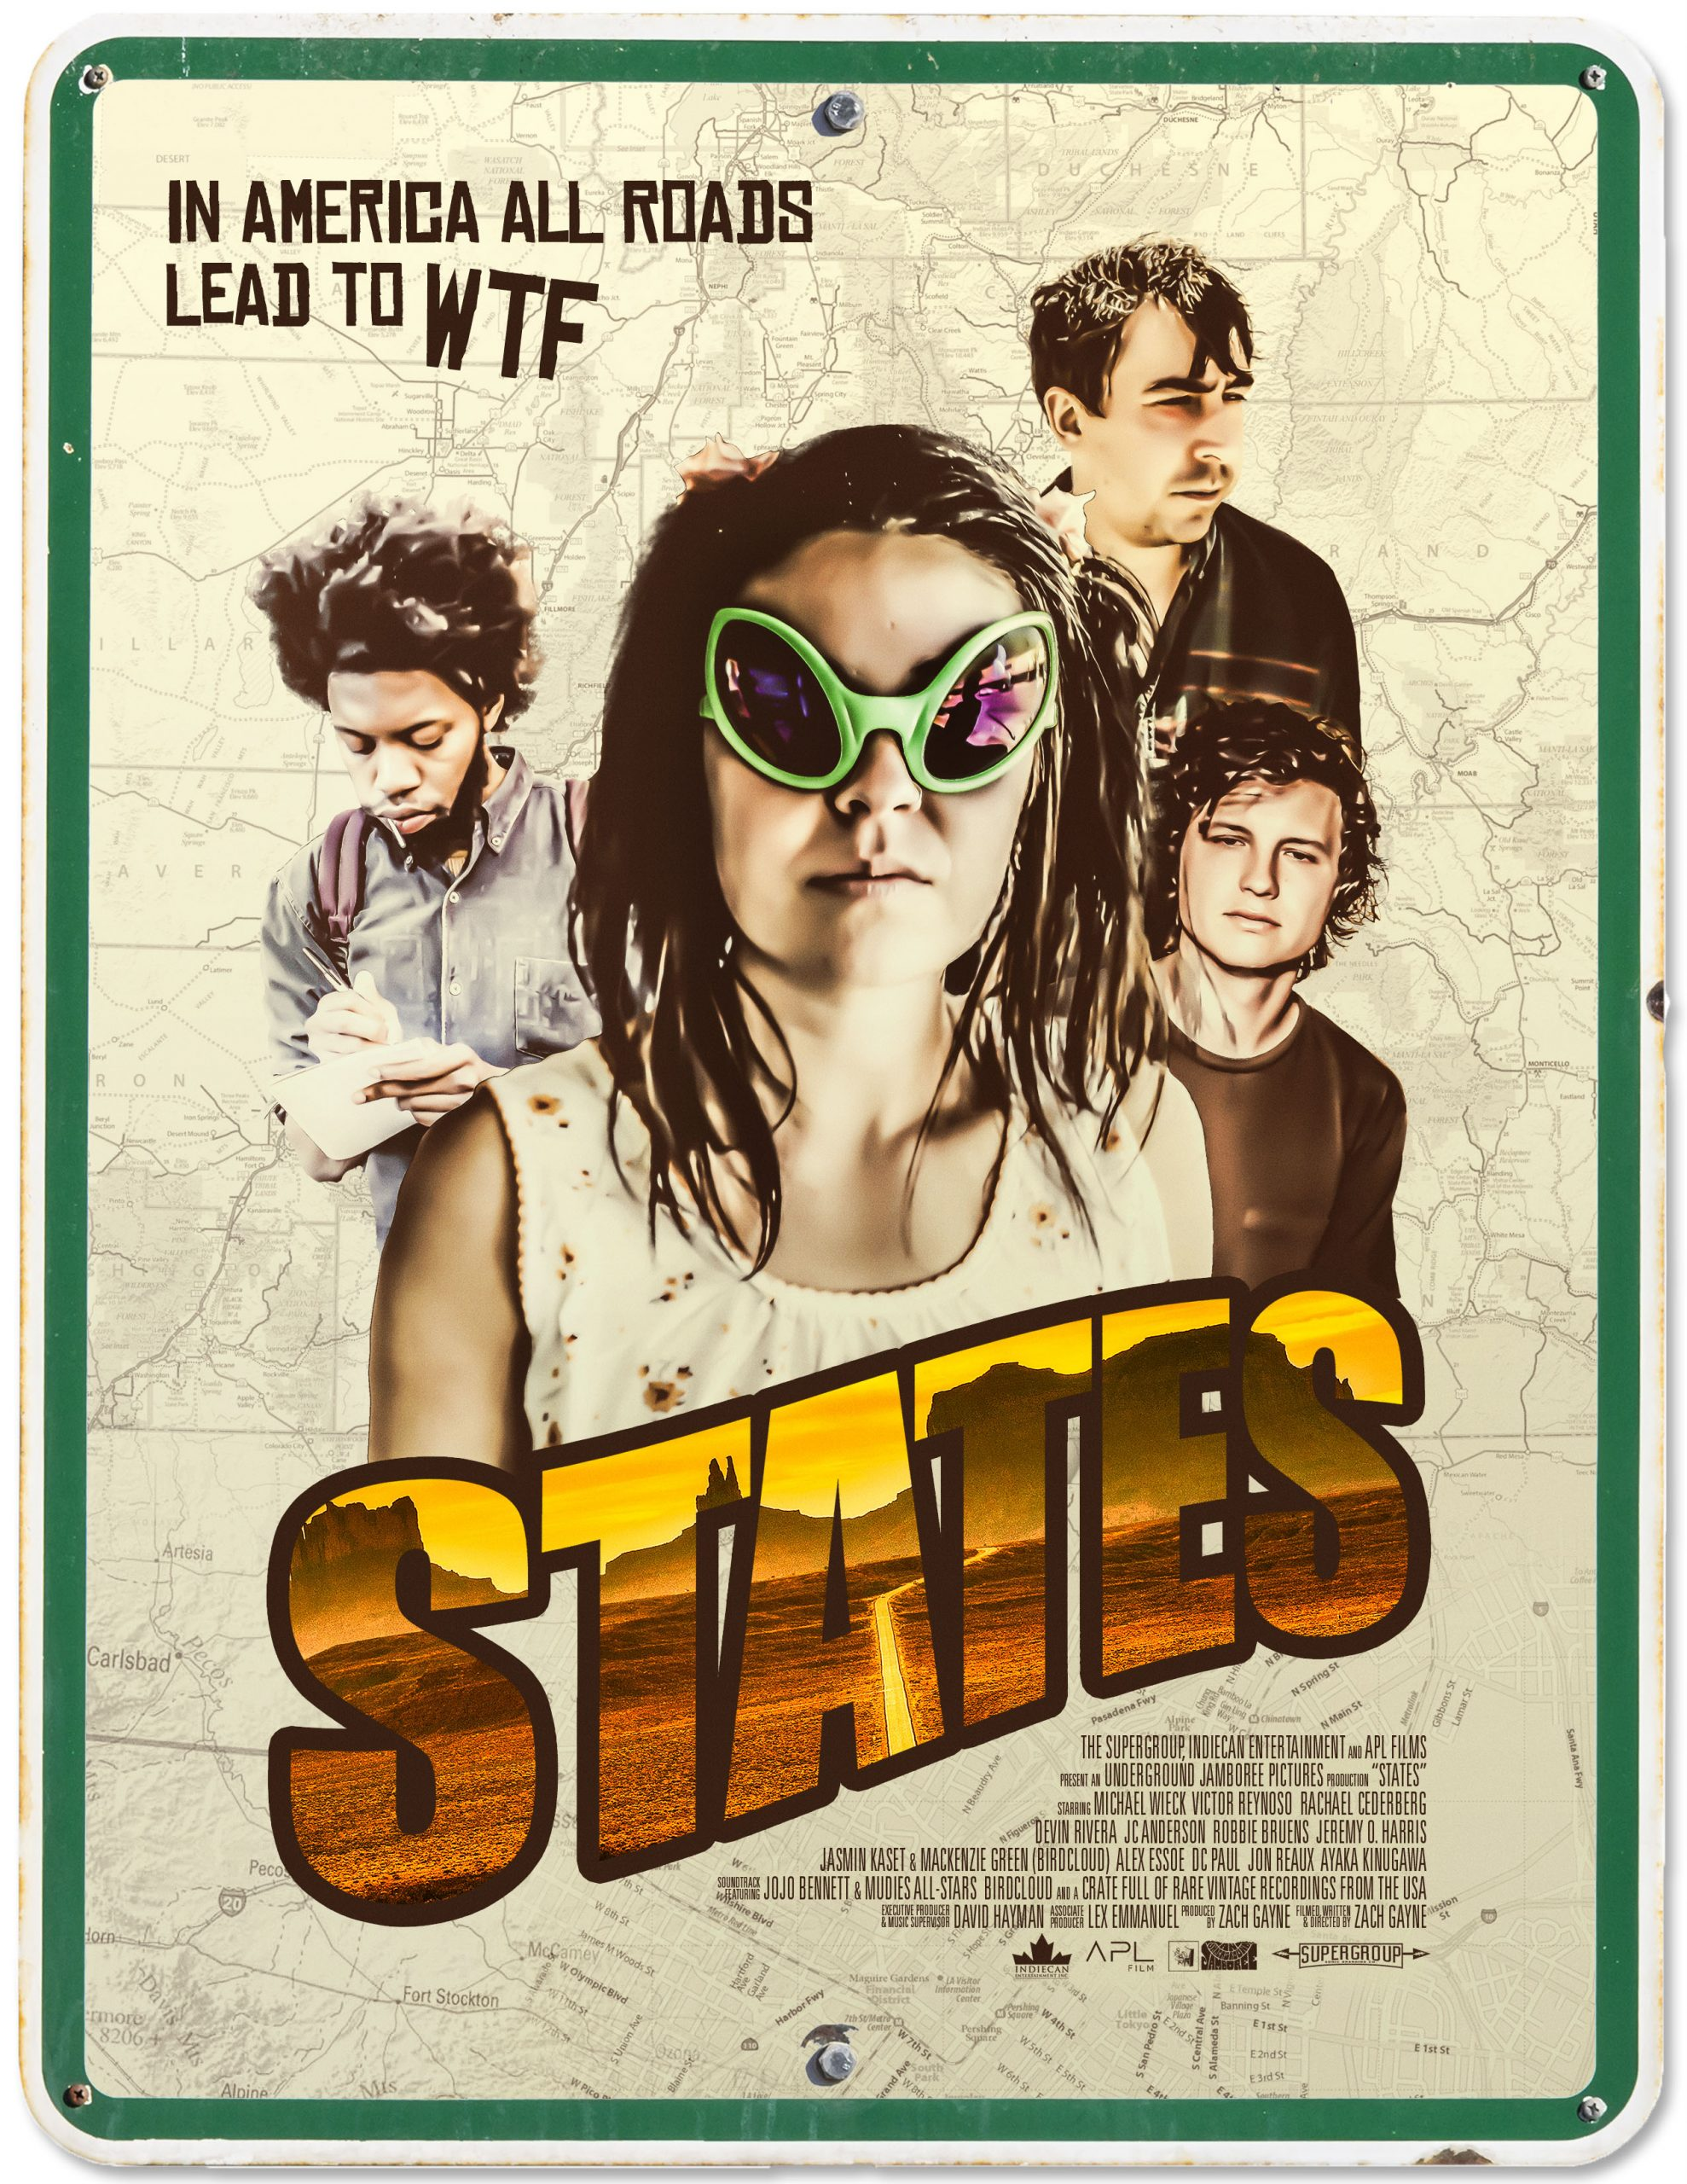 States: Check Out the Trailer for Zach Gayne's Road Movie